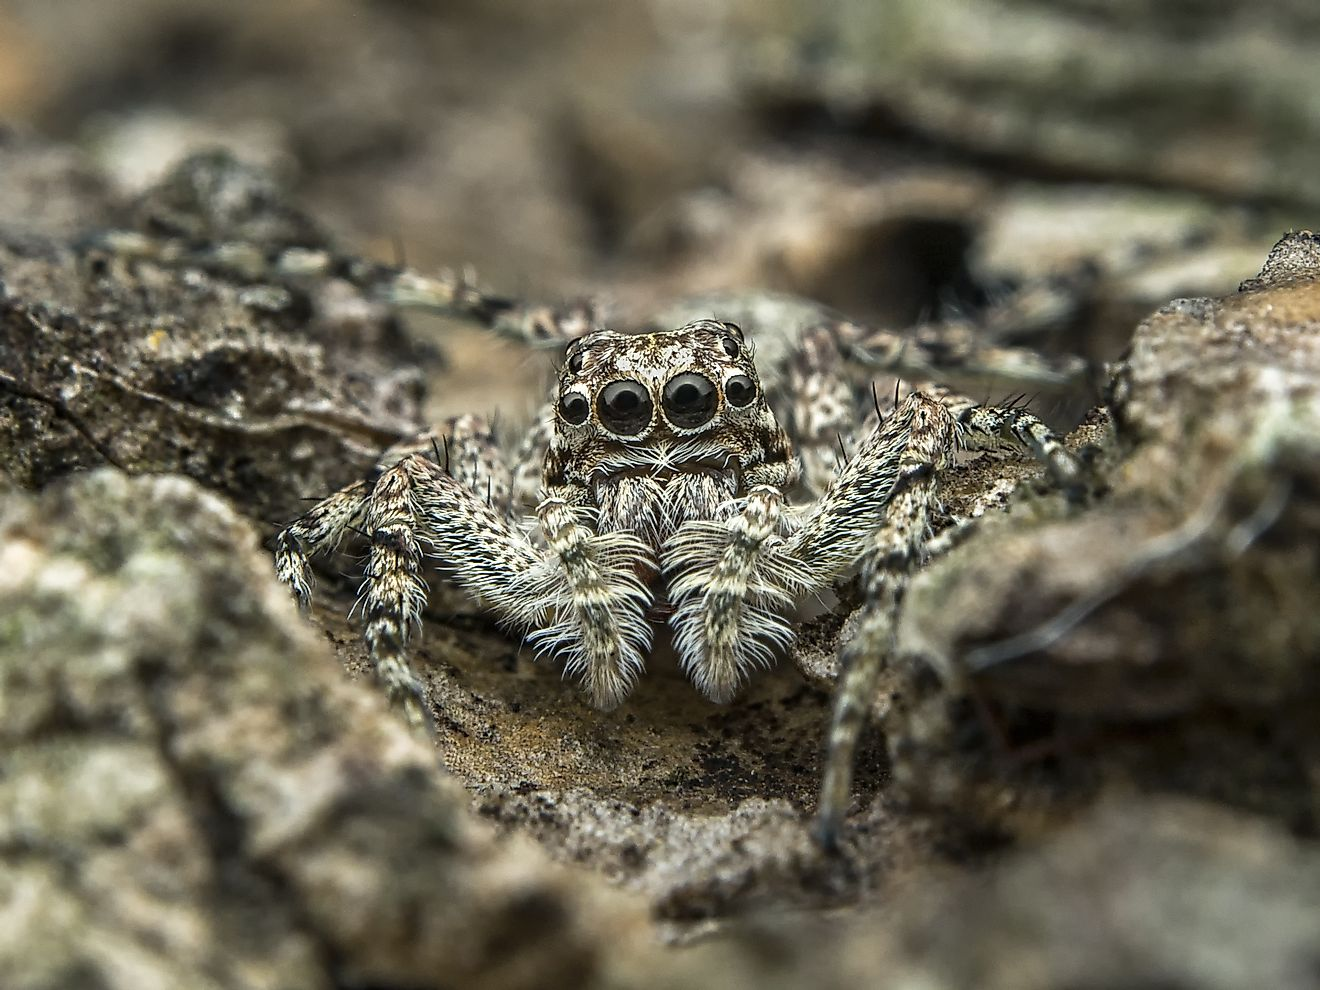 Their small sizes and ability to blend into their natural environs have enabled members of the Jumping Spider family to have such a large diaspora and global range.